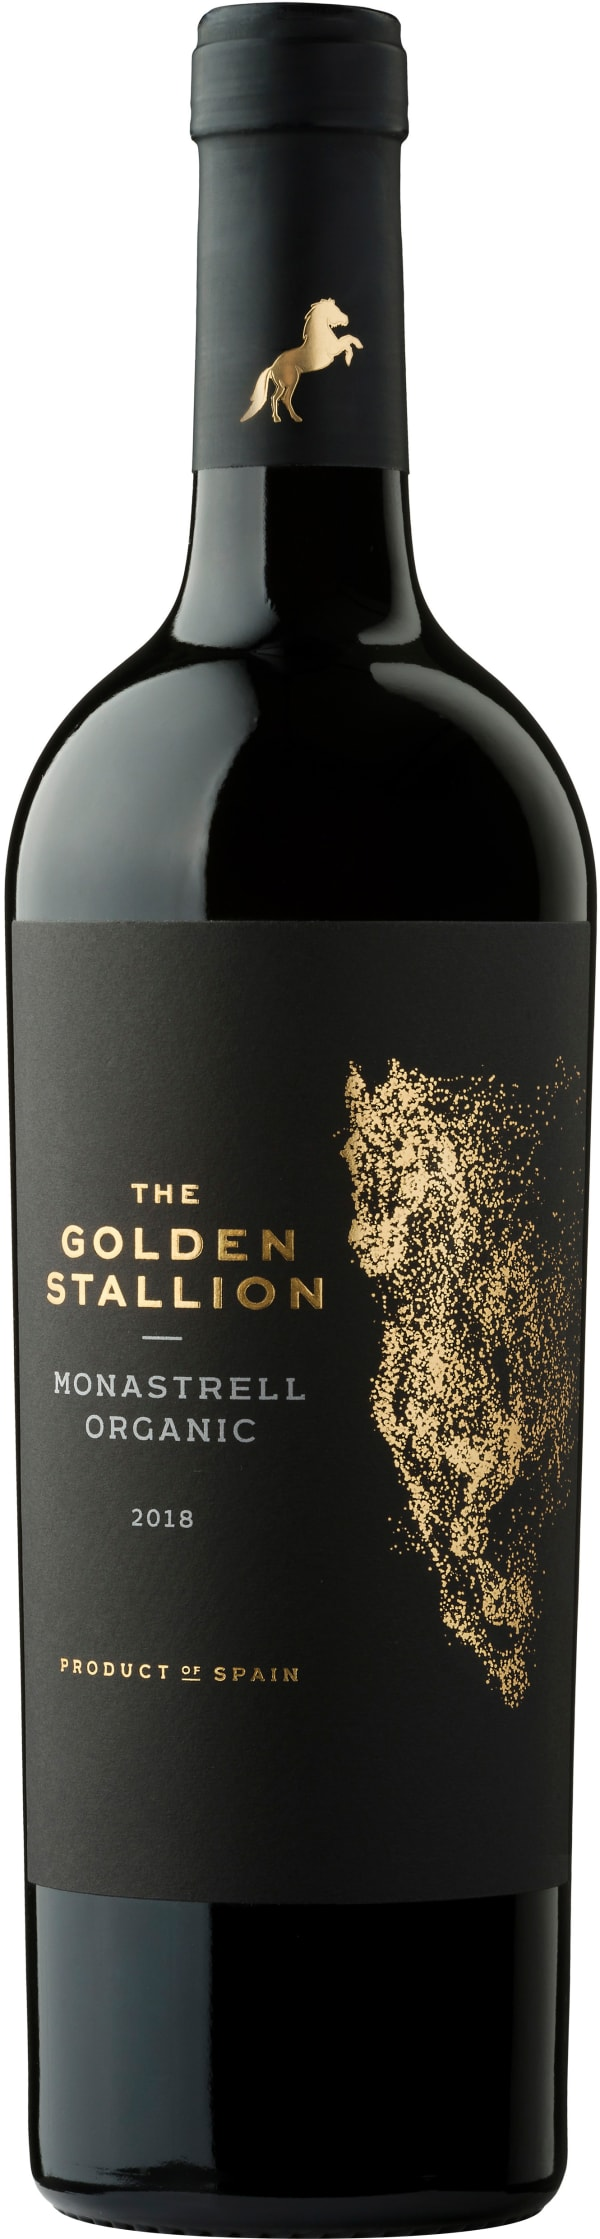 The Golden Stallion Organic Monastrell 2018